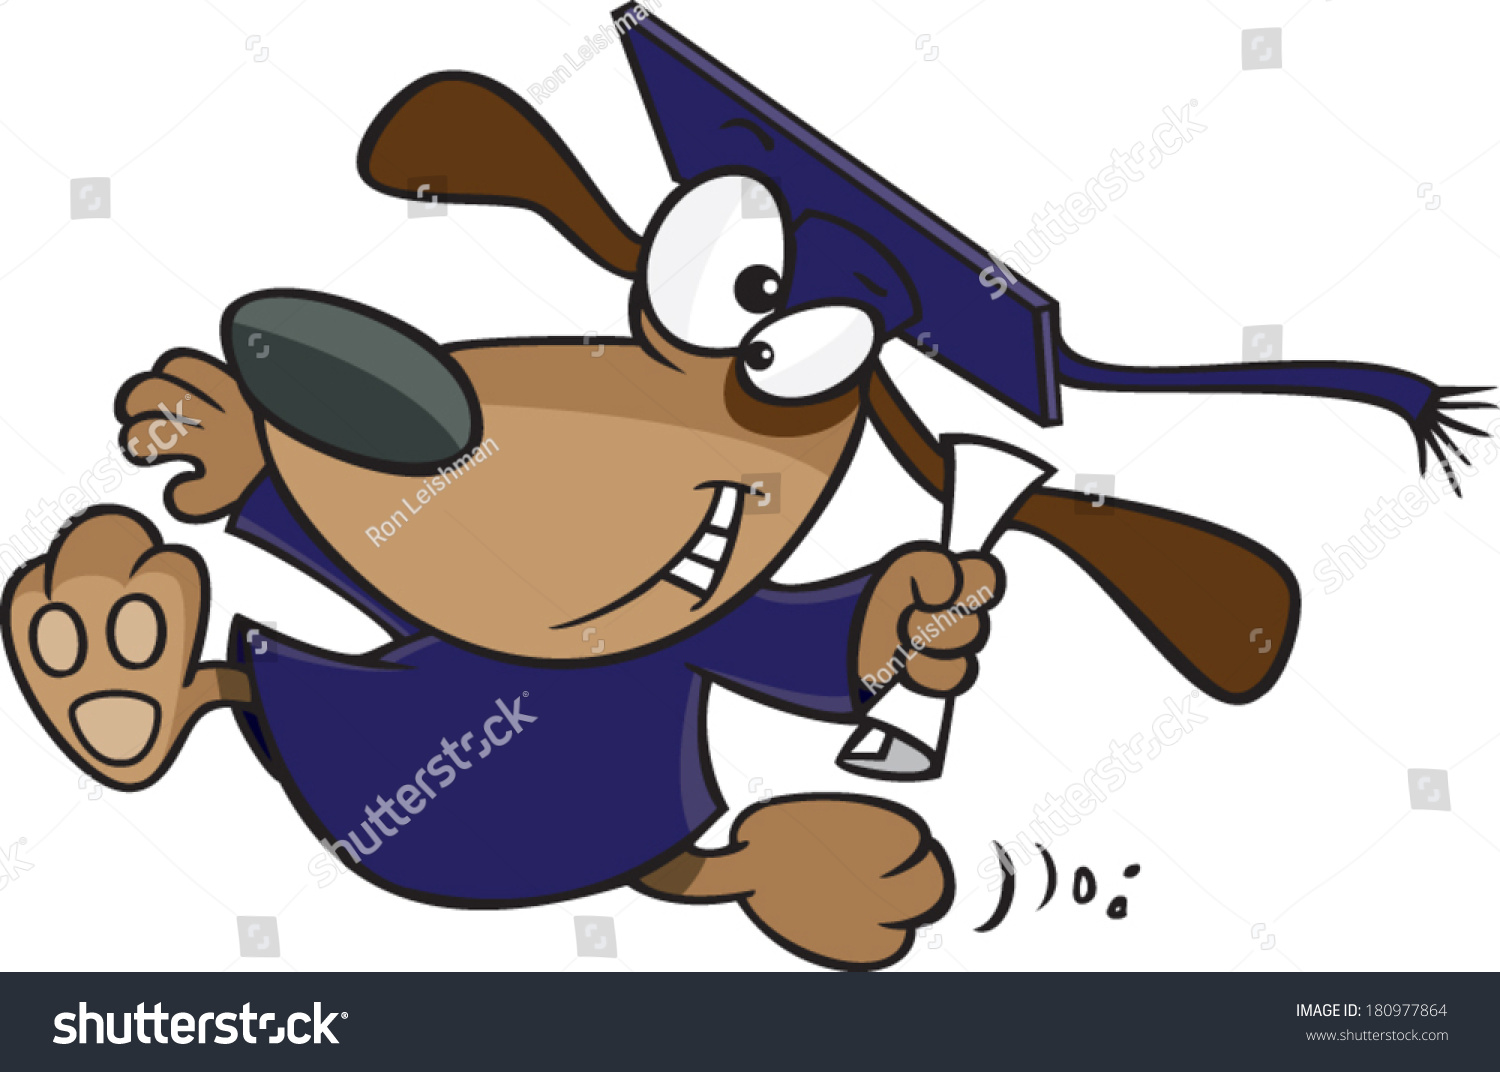 Cartoon Dog Wearing Graduation Cap Gown Stock Vector 180977864 ...